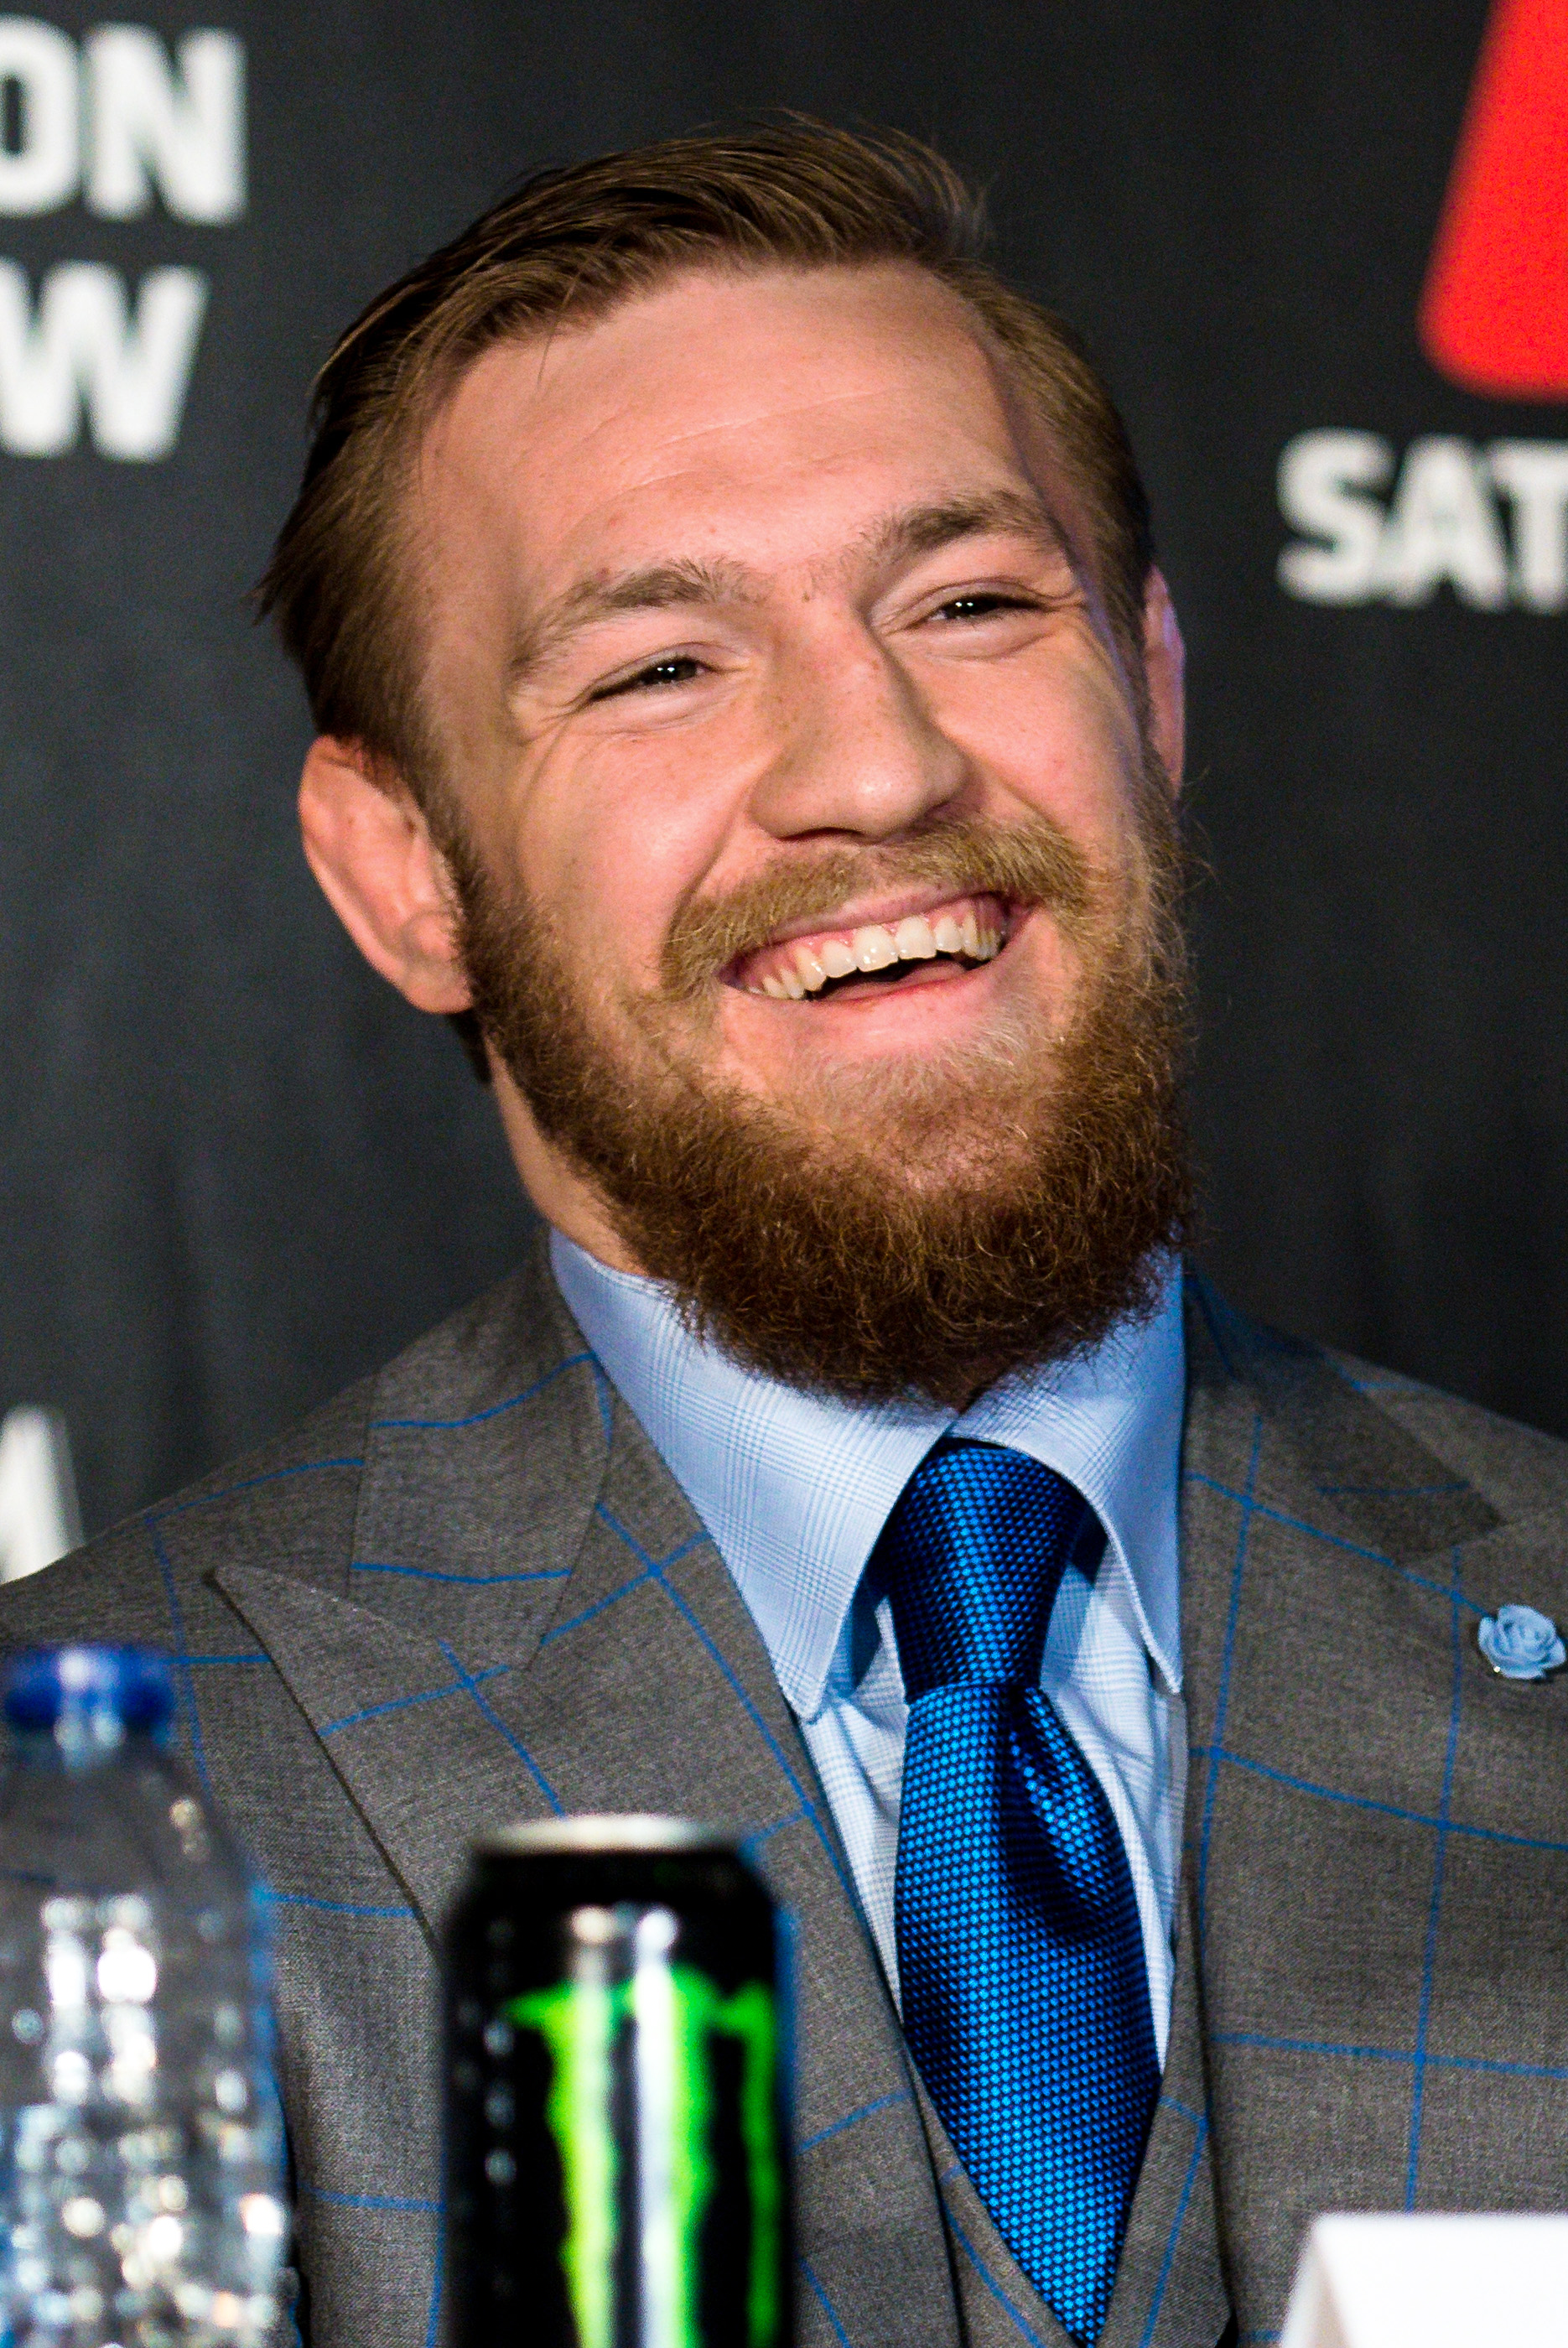 Conor_McGregor,_UFC_189_World_Tour_London_(2)